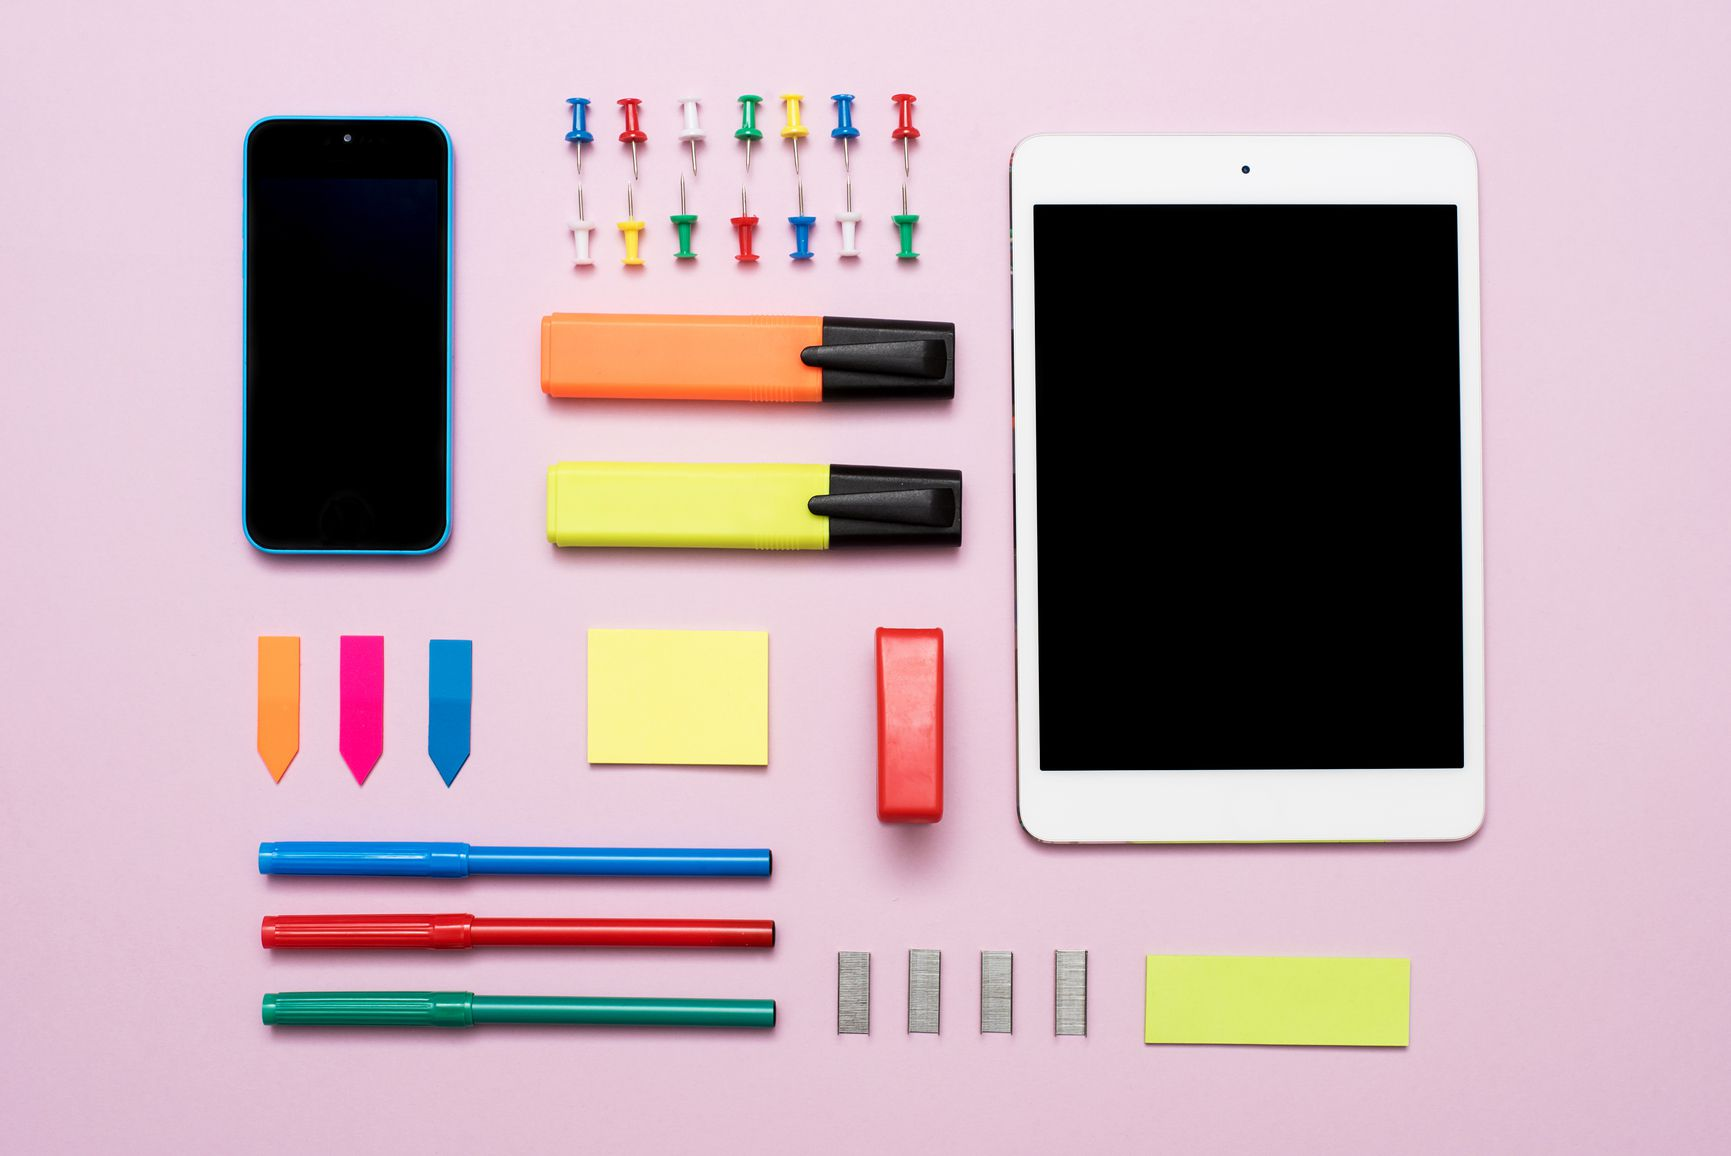 A smart phone, tablet, flash drives, and pens against a light purple background